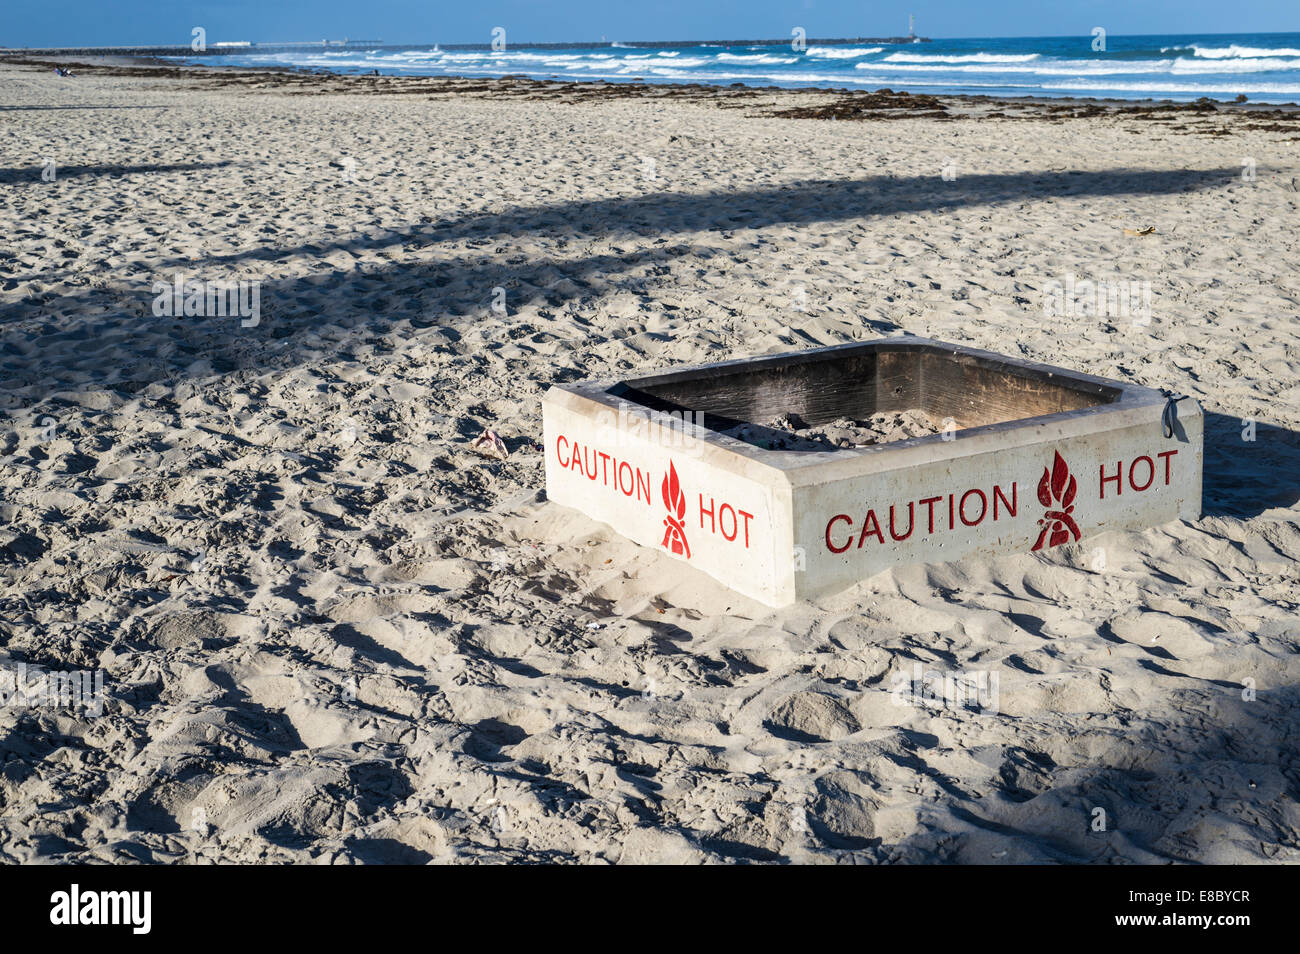 Caution Hot warning sign on the side of a fire pit on Mission Beach. San  Diego, California, United States. - Caution Hot Warning Sign On The Side Of A Fire Pit On Mission Beach